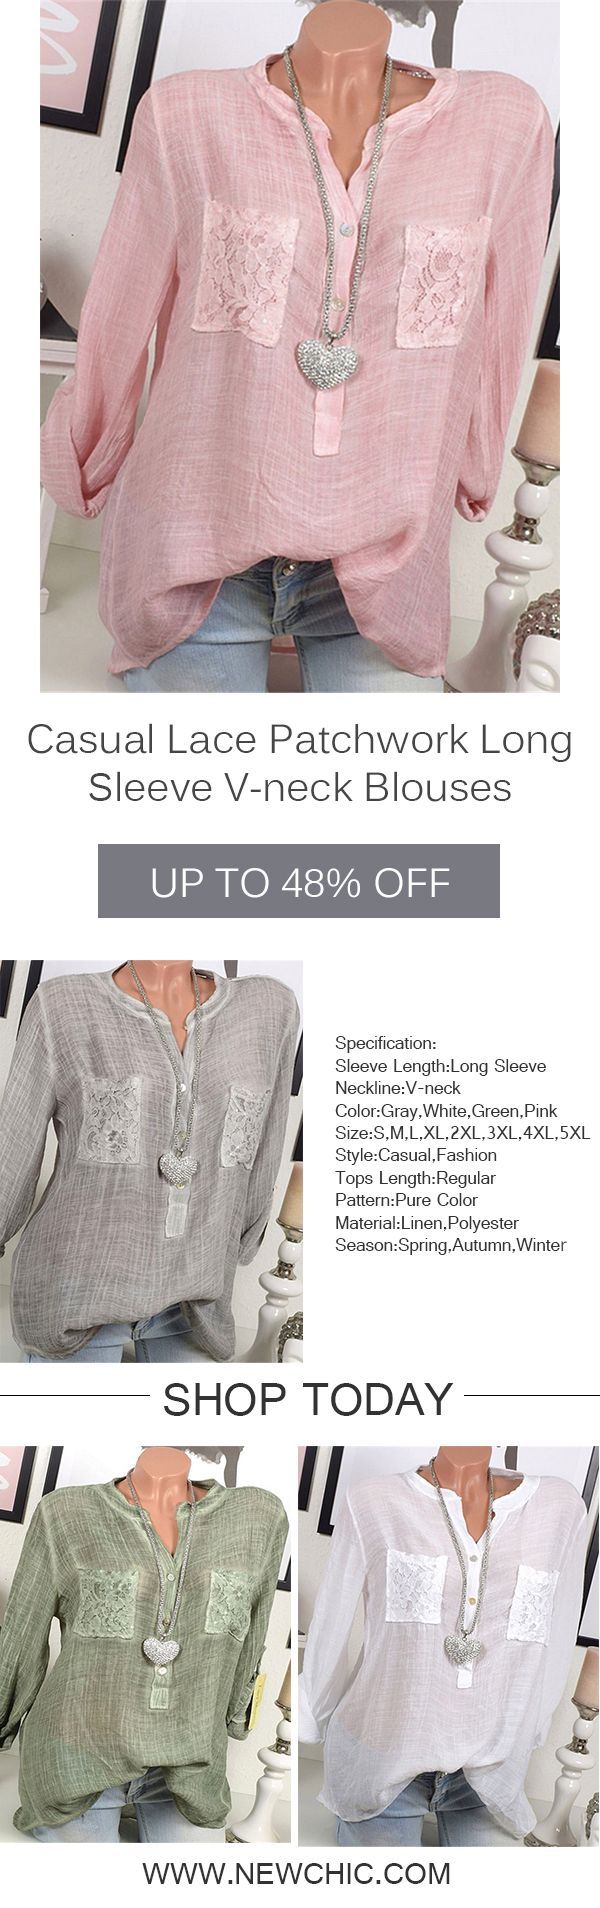 [Newchic Online Shopping] 48%OFF Women's Casual Lace Patchwork Blouses with Long Sleeve and V-neck #blouse #womenswear #womensfashion